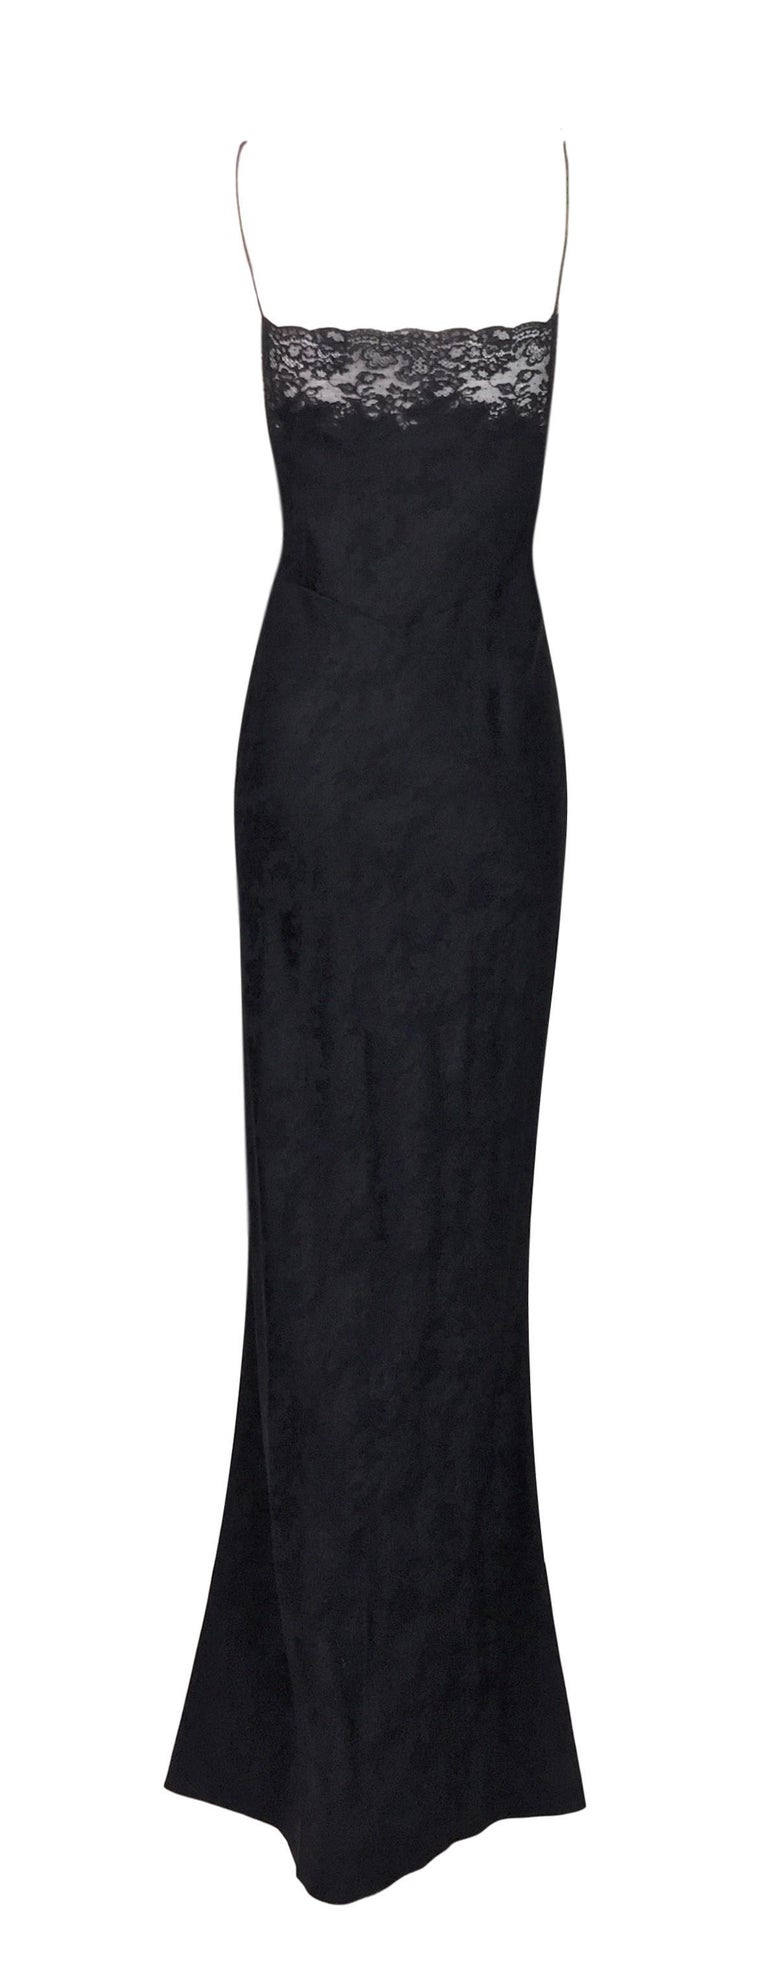 F/W 1998 Christian Dior John Galliano Sheer Lace Black Plunging Long Slip Dress In Excellent Condition For Sale In Yukon, OK